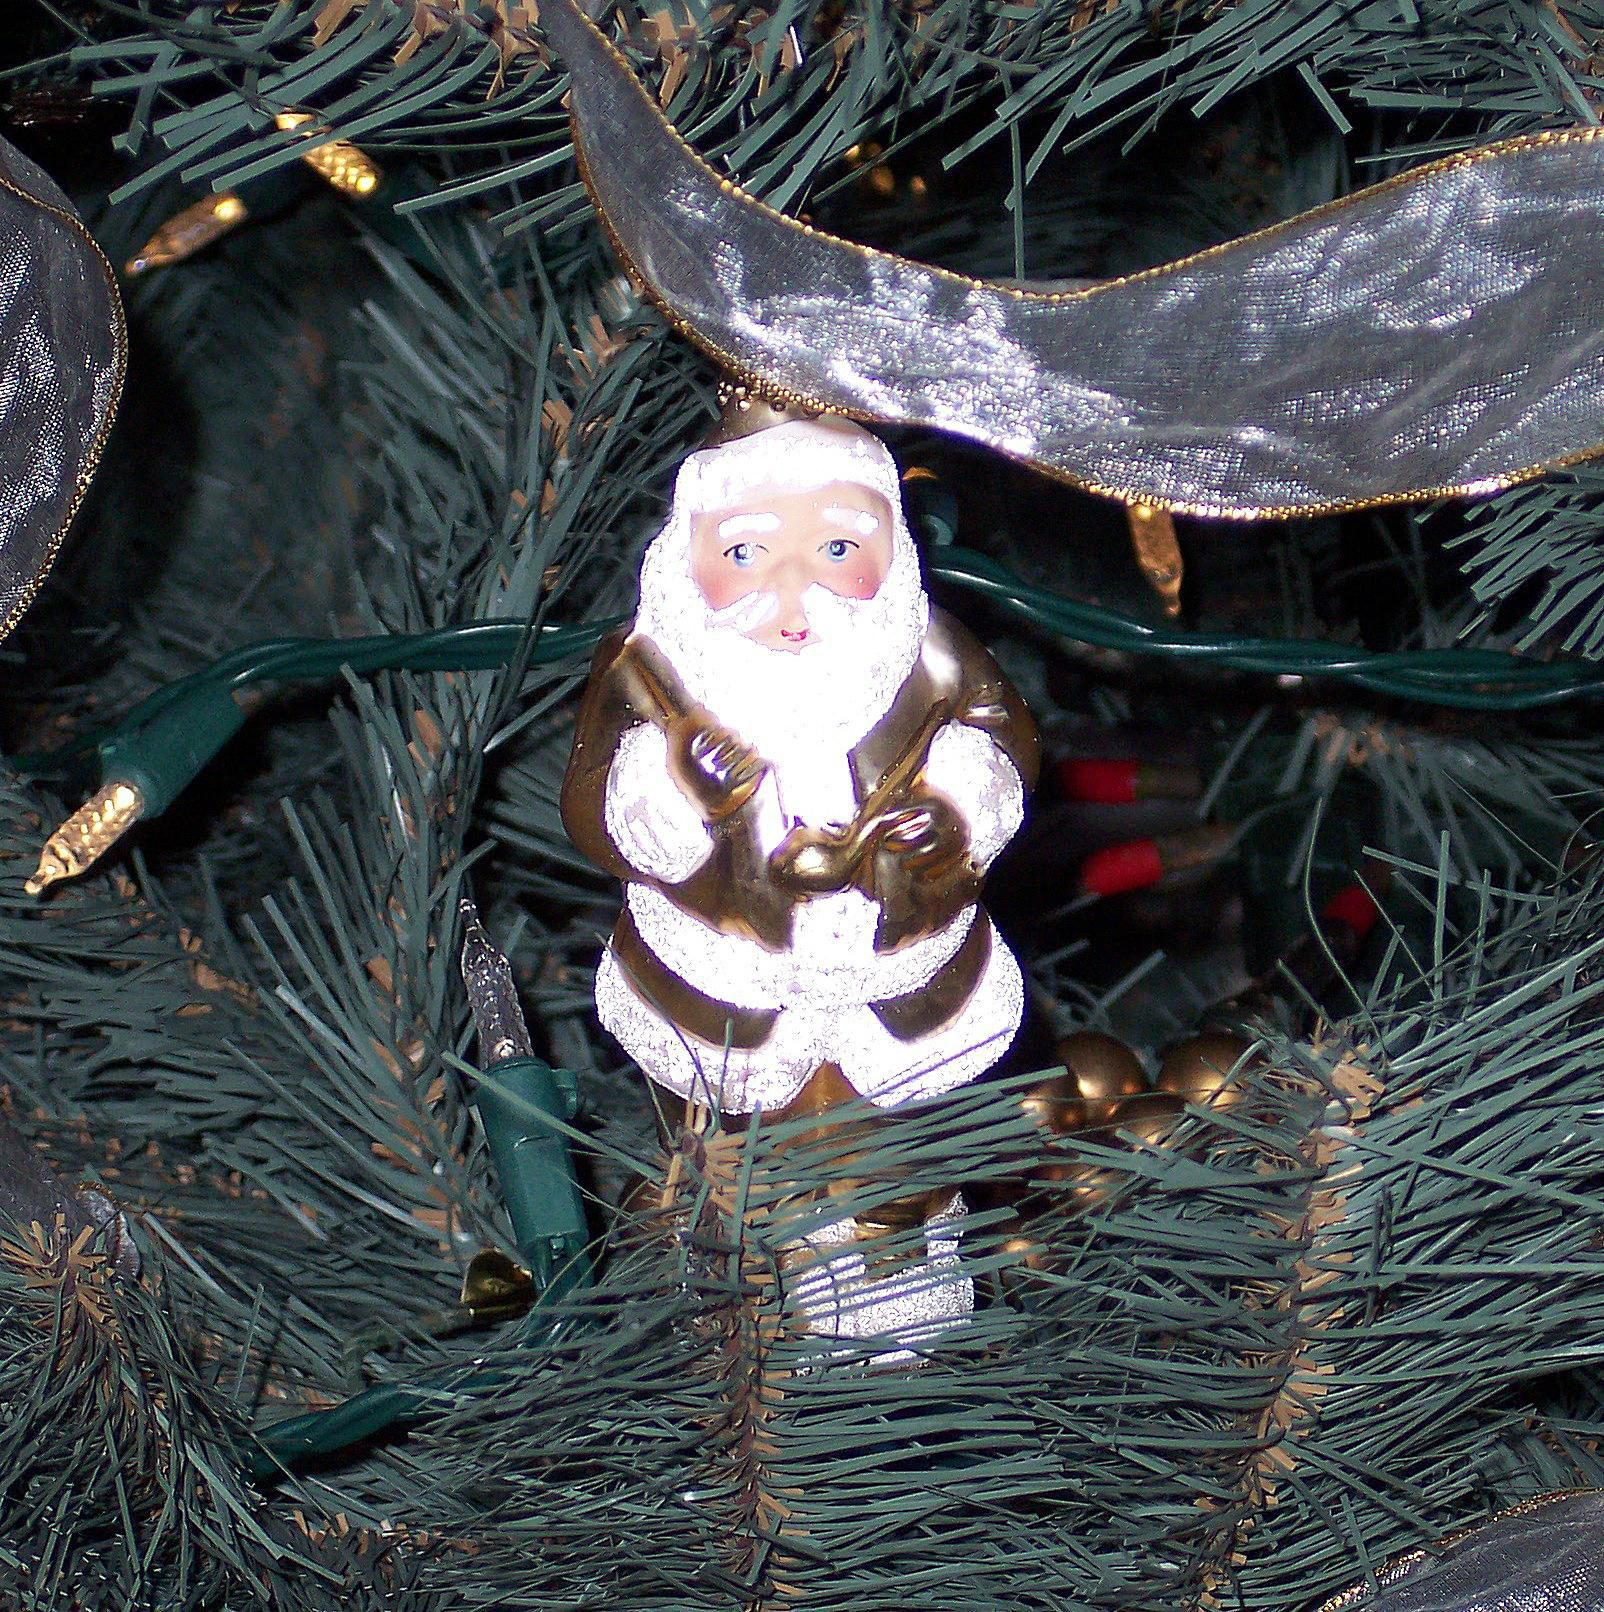 choosing ornaments for your holiday tree